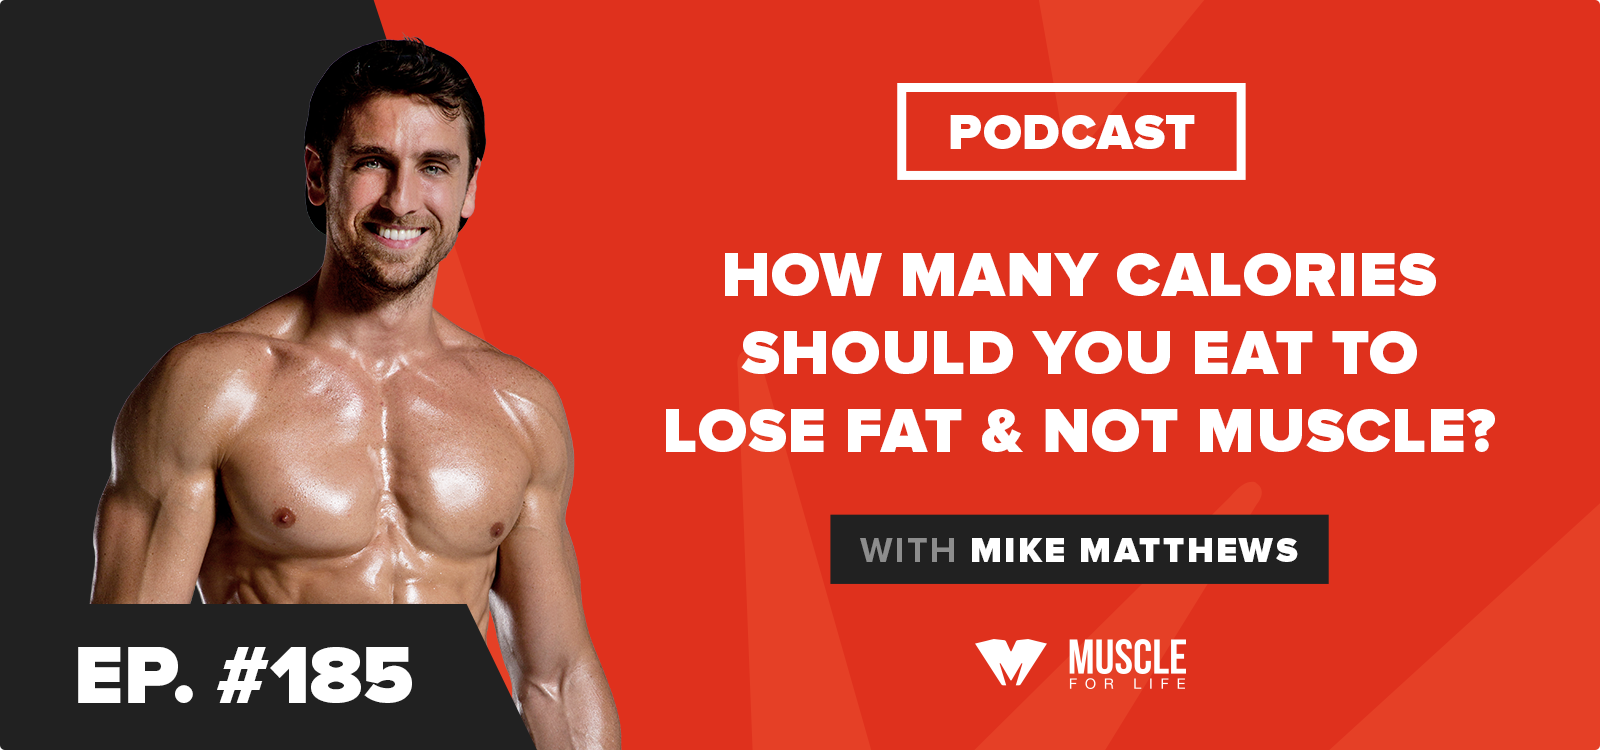 How Many Calories Should You Eat to Lose Fat & Not Muscle?